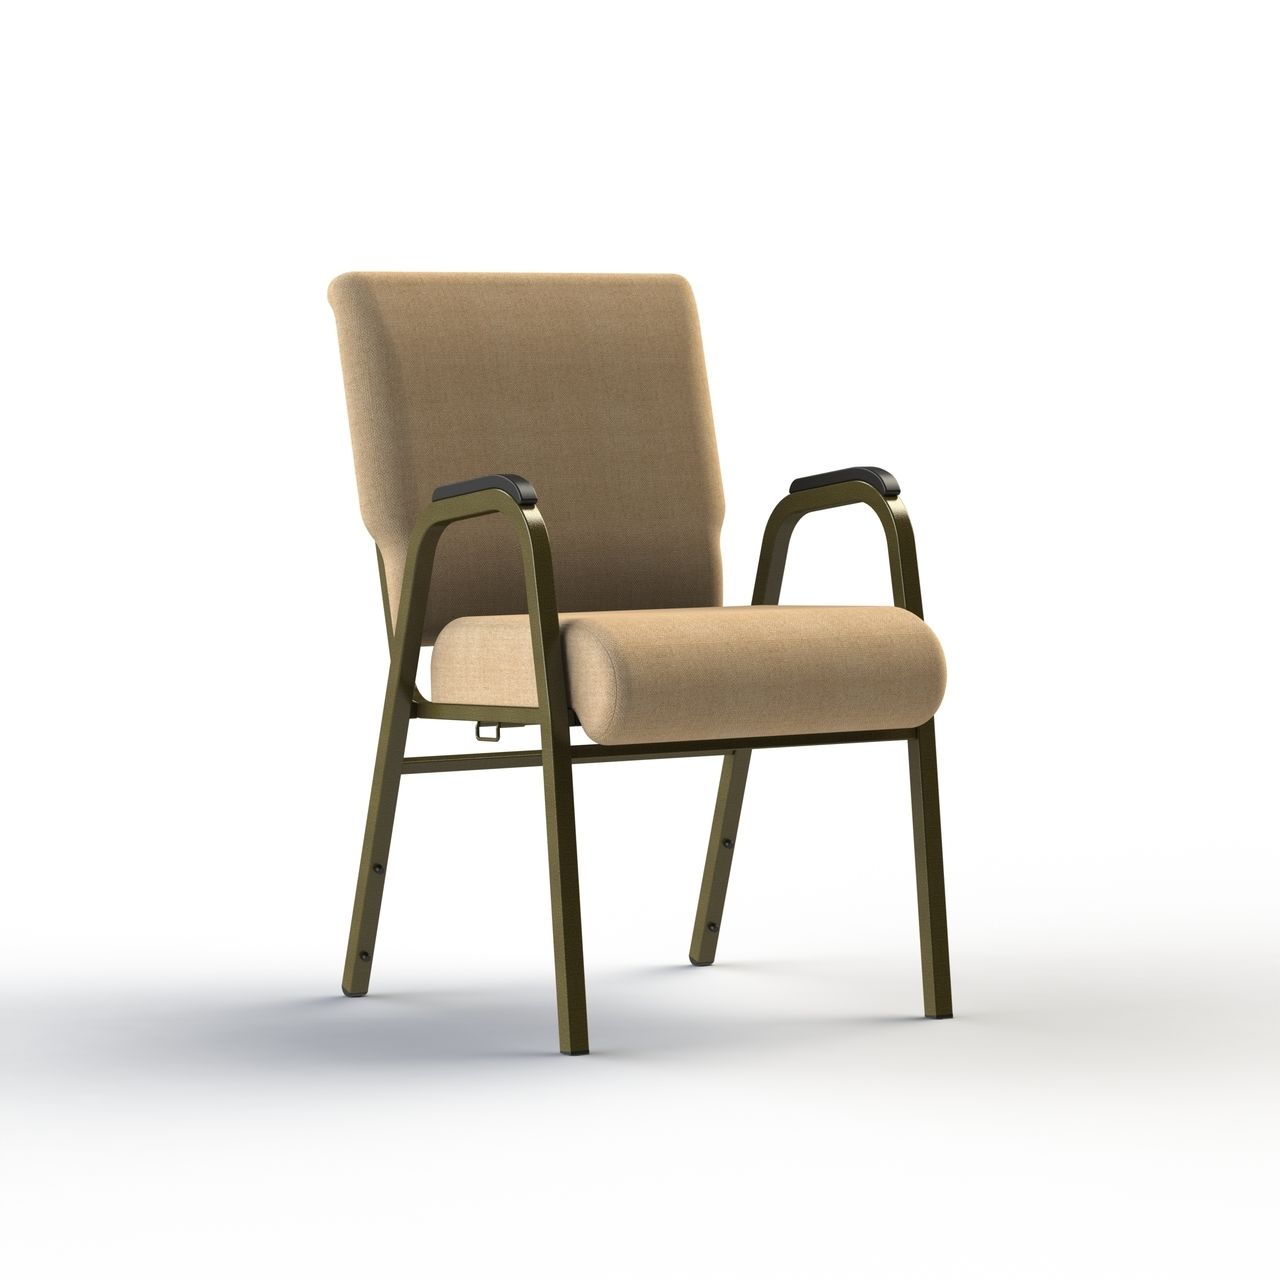 The Arm Chair Has All The Best Features Of The Church Chair Only